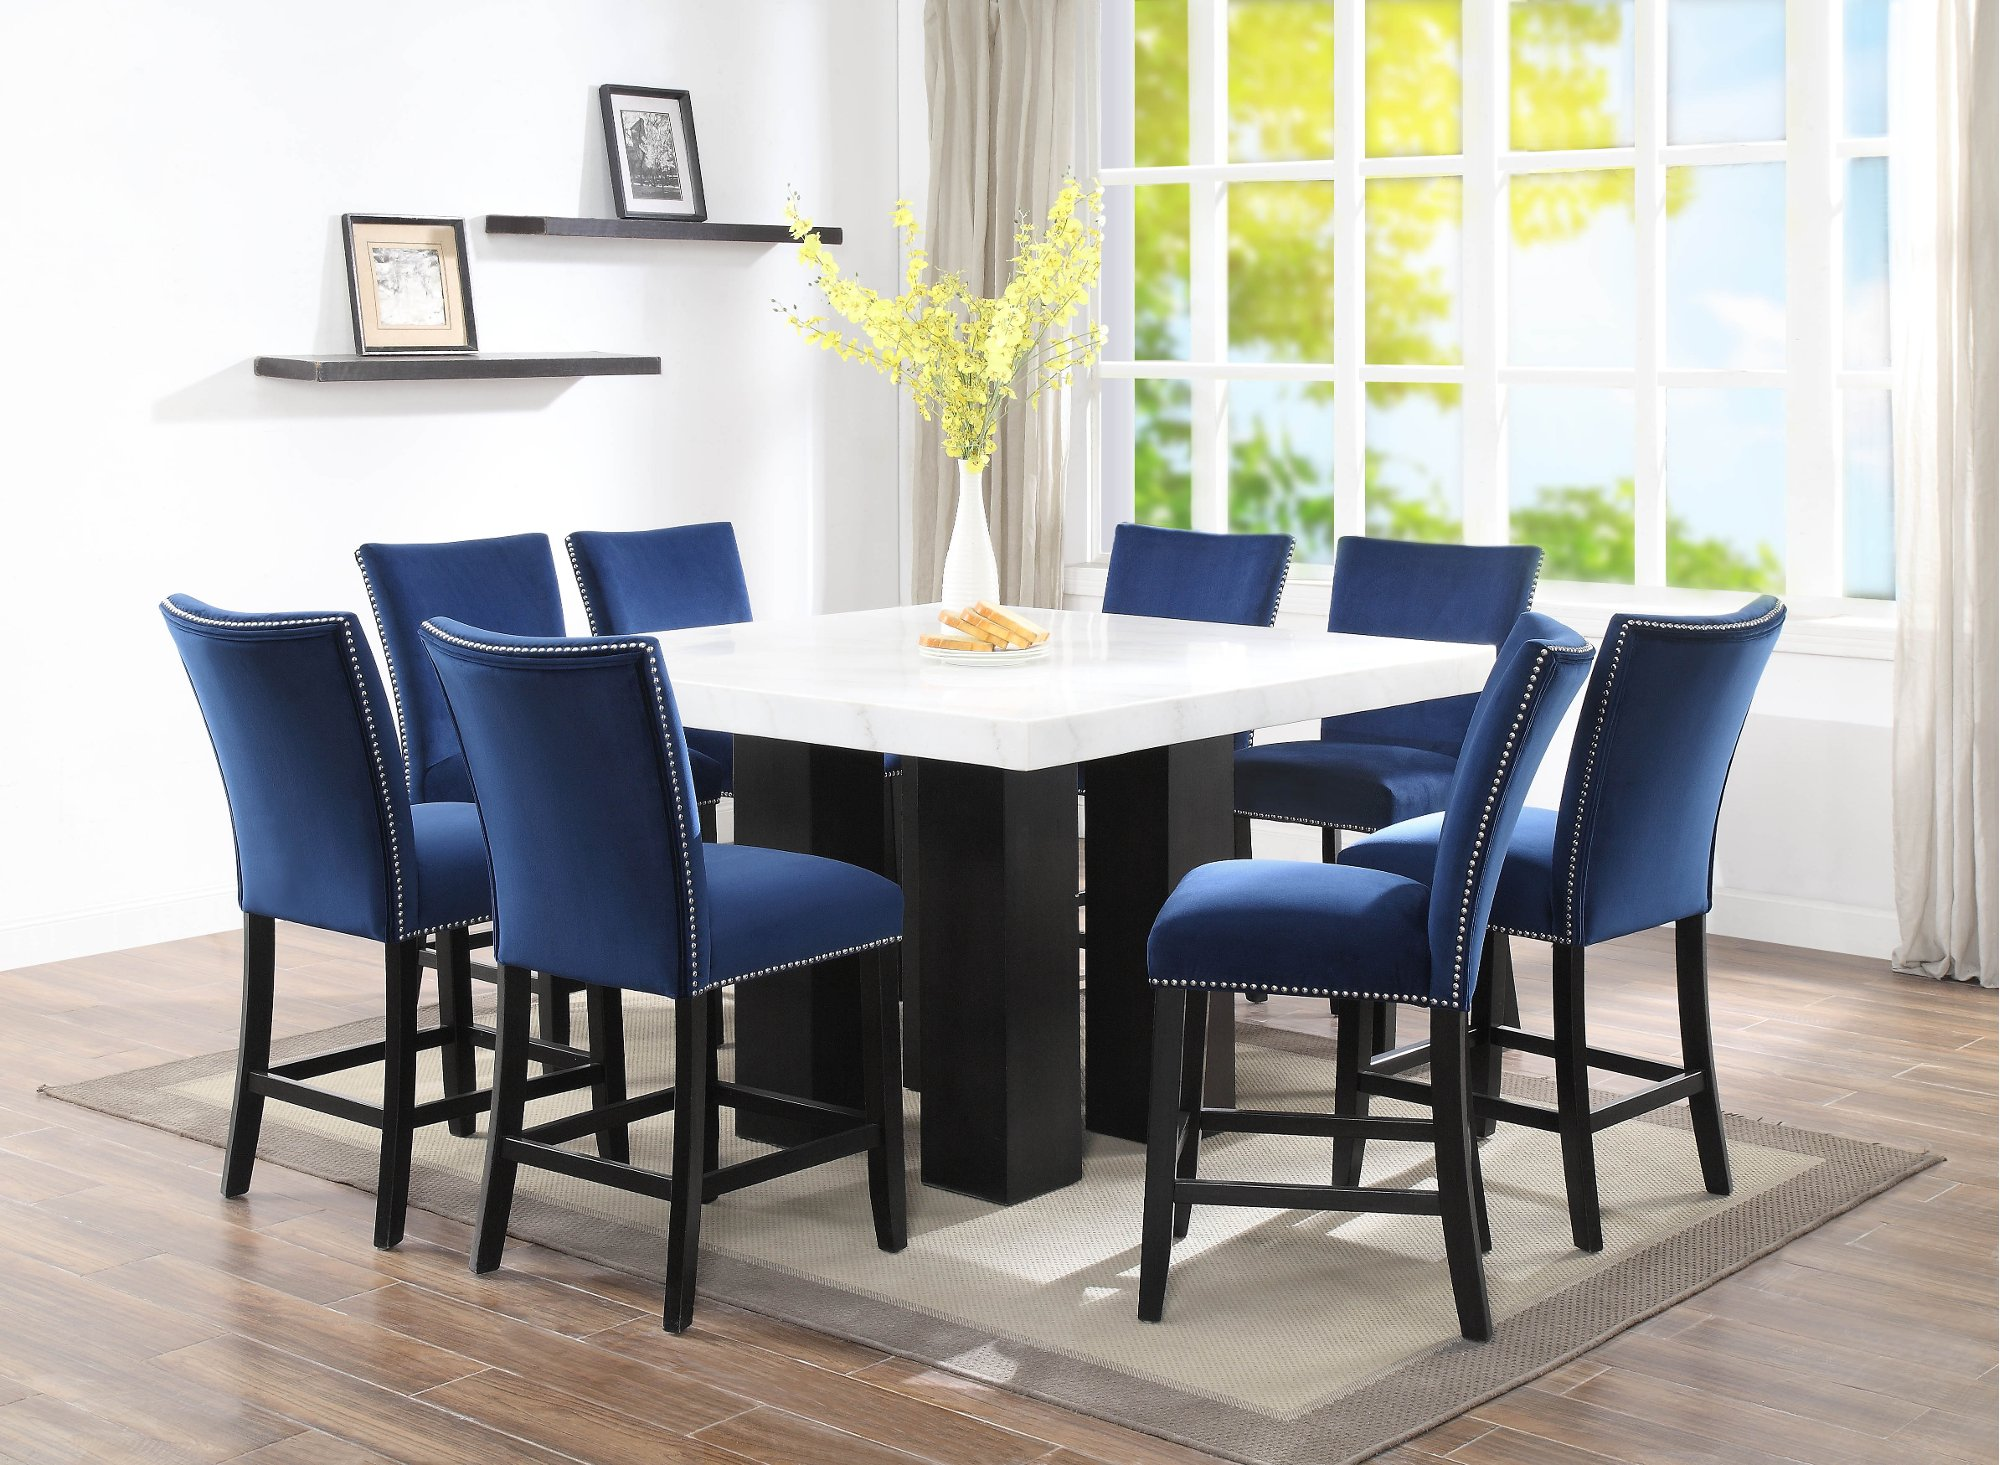 Best Selling Marble And Blue 9 Piece Counter Height Dining Set Camila Accuweather Shop